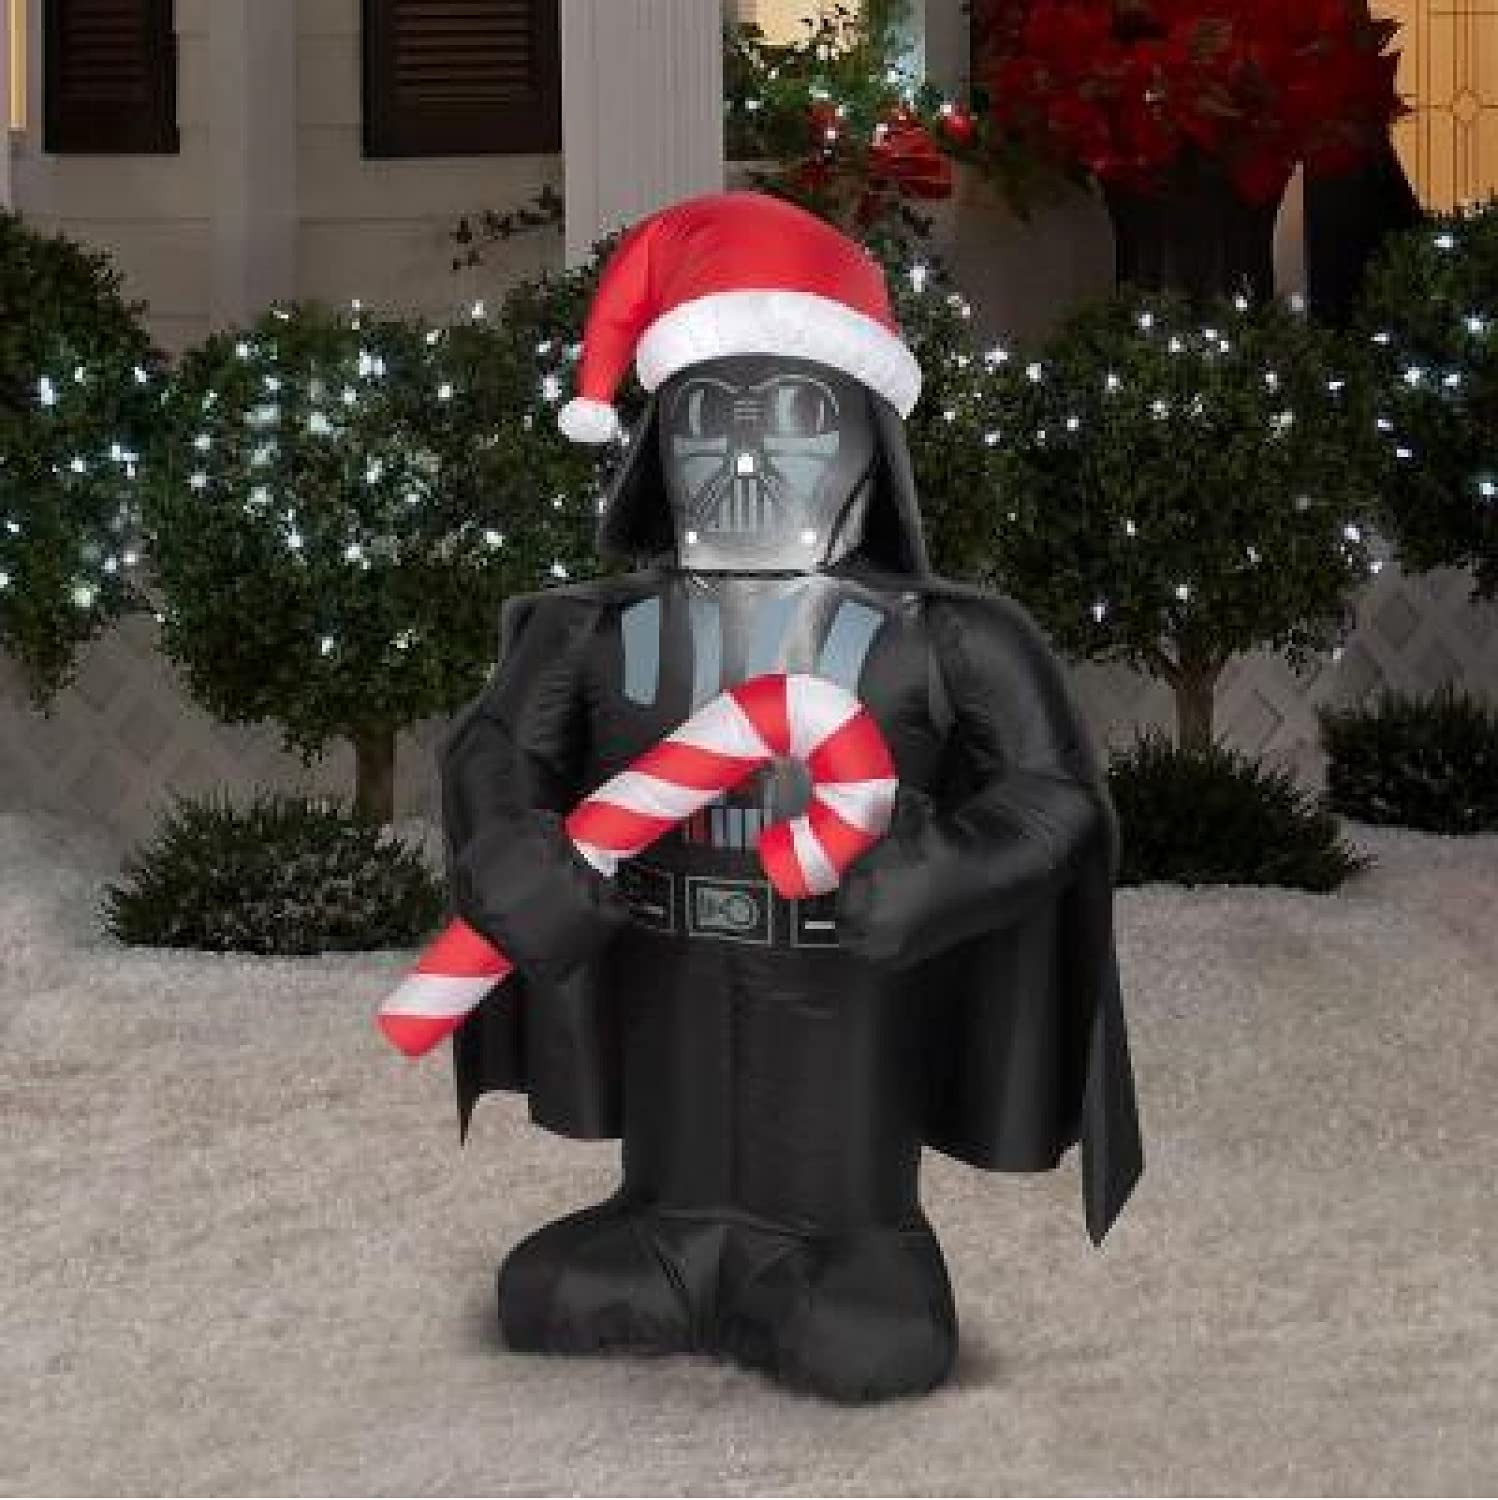 3 5 Inflatable Darth Vader Star Wars with Candy Cane Christmas Outdoor Yard Art